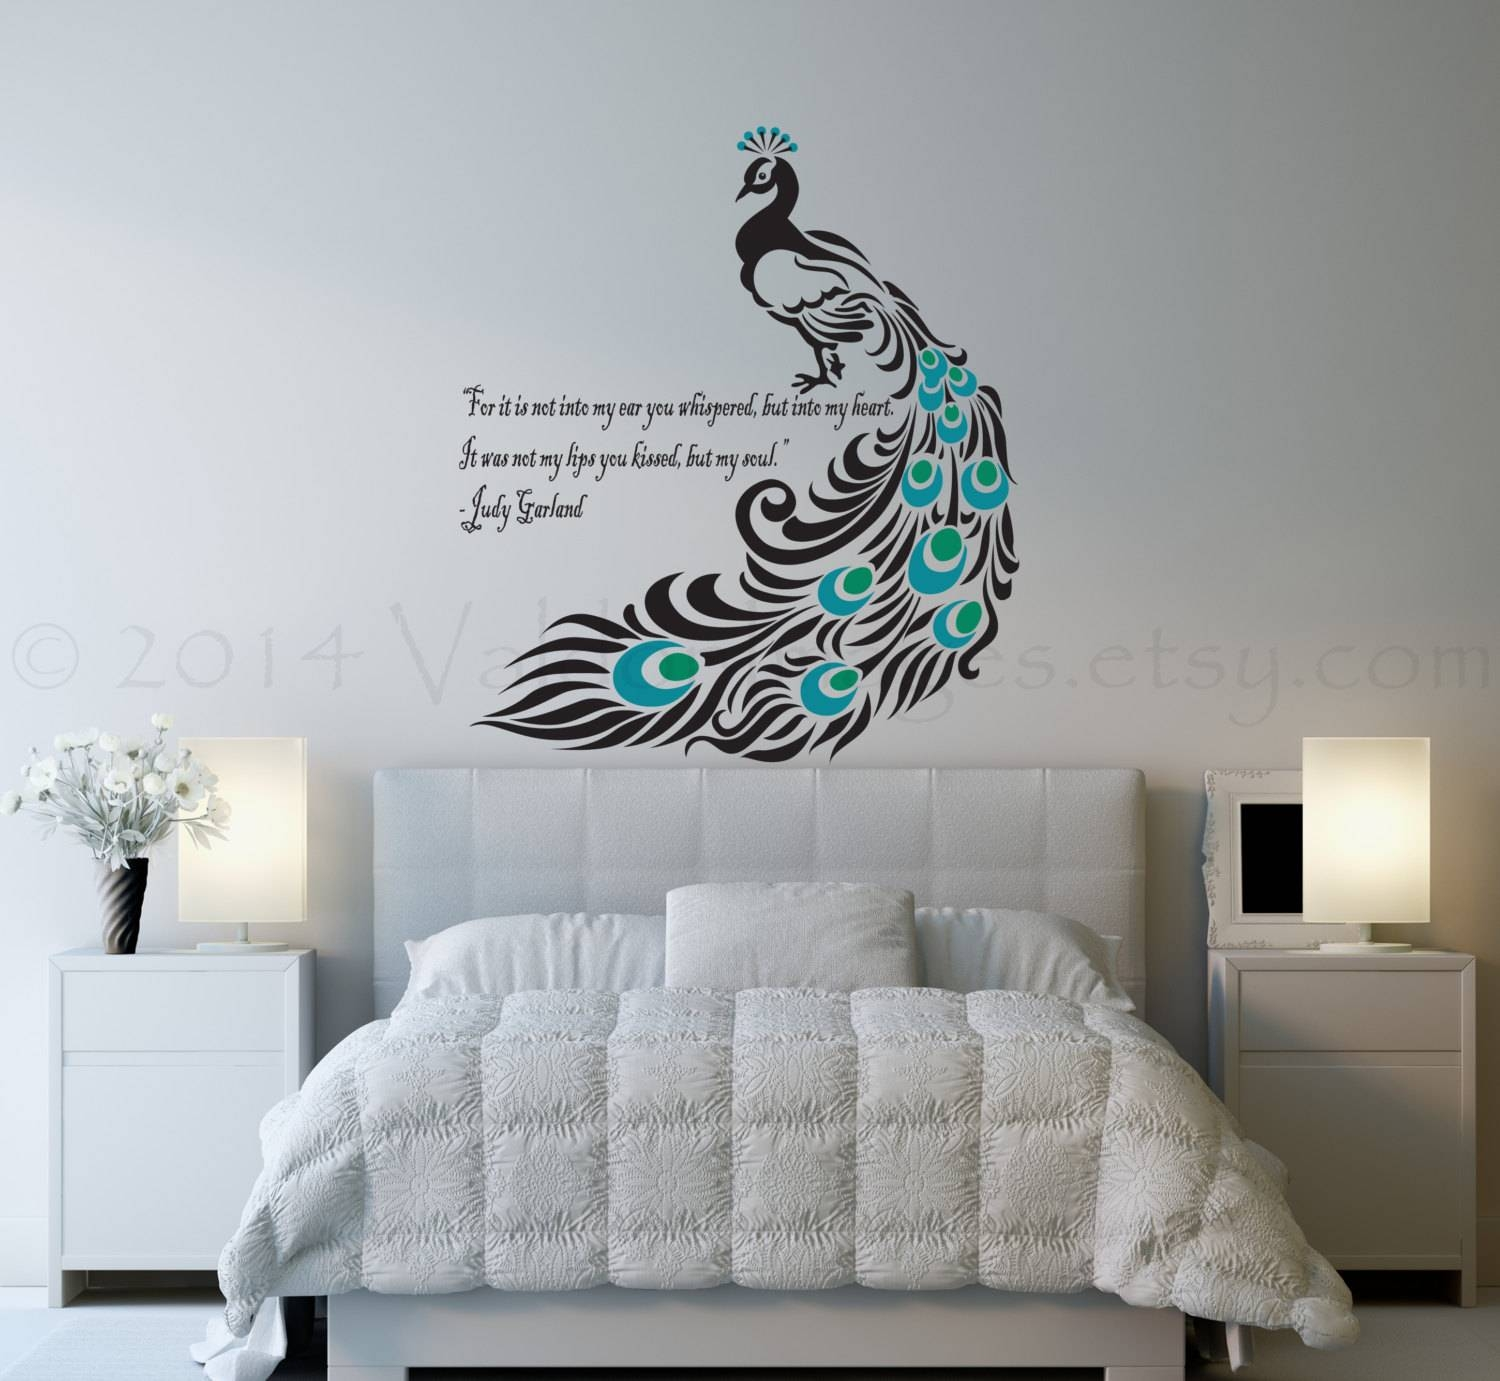 Bedroom : Superb 3D Wall Art Stickers Wall Stickers For Bedrooms Within 2018 Unusual 3D Wall Art (View 7 of 20)